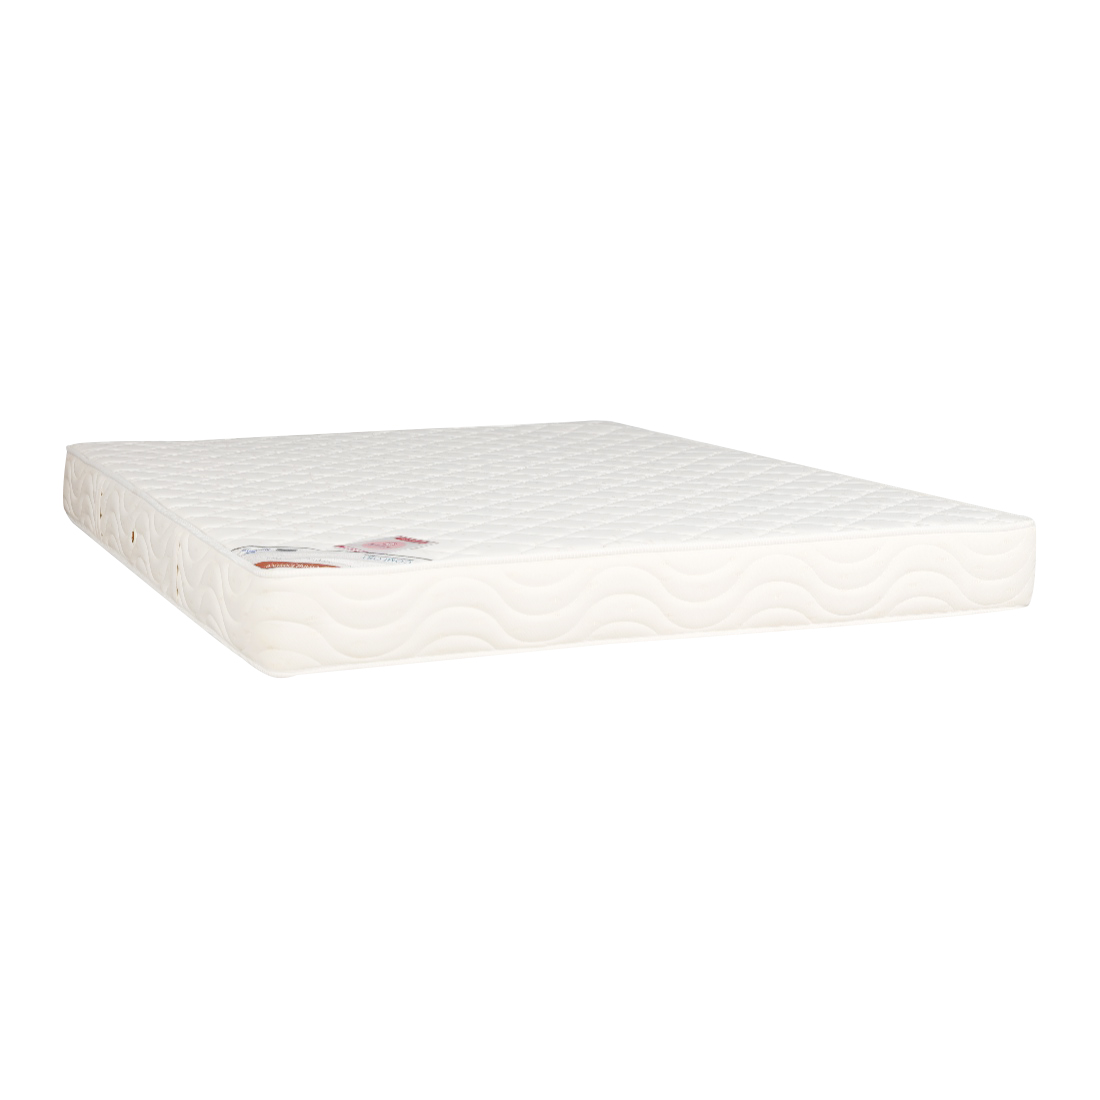 Comfort Plus Bonnell Spring King Bed Mattress (78*72*6) in Cream Colour by HomeTown